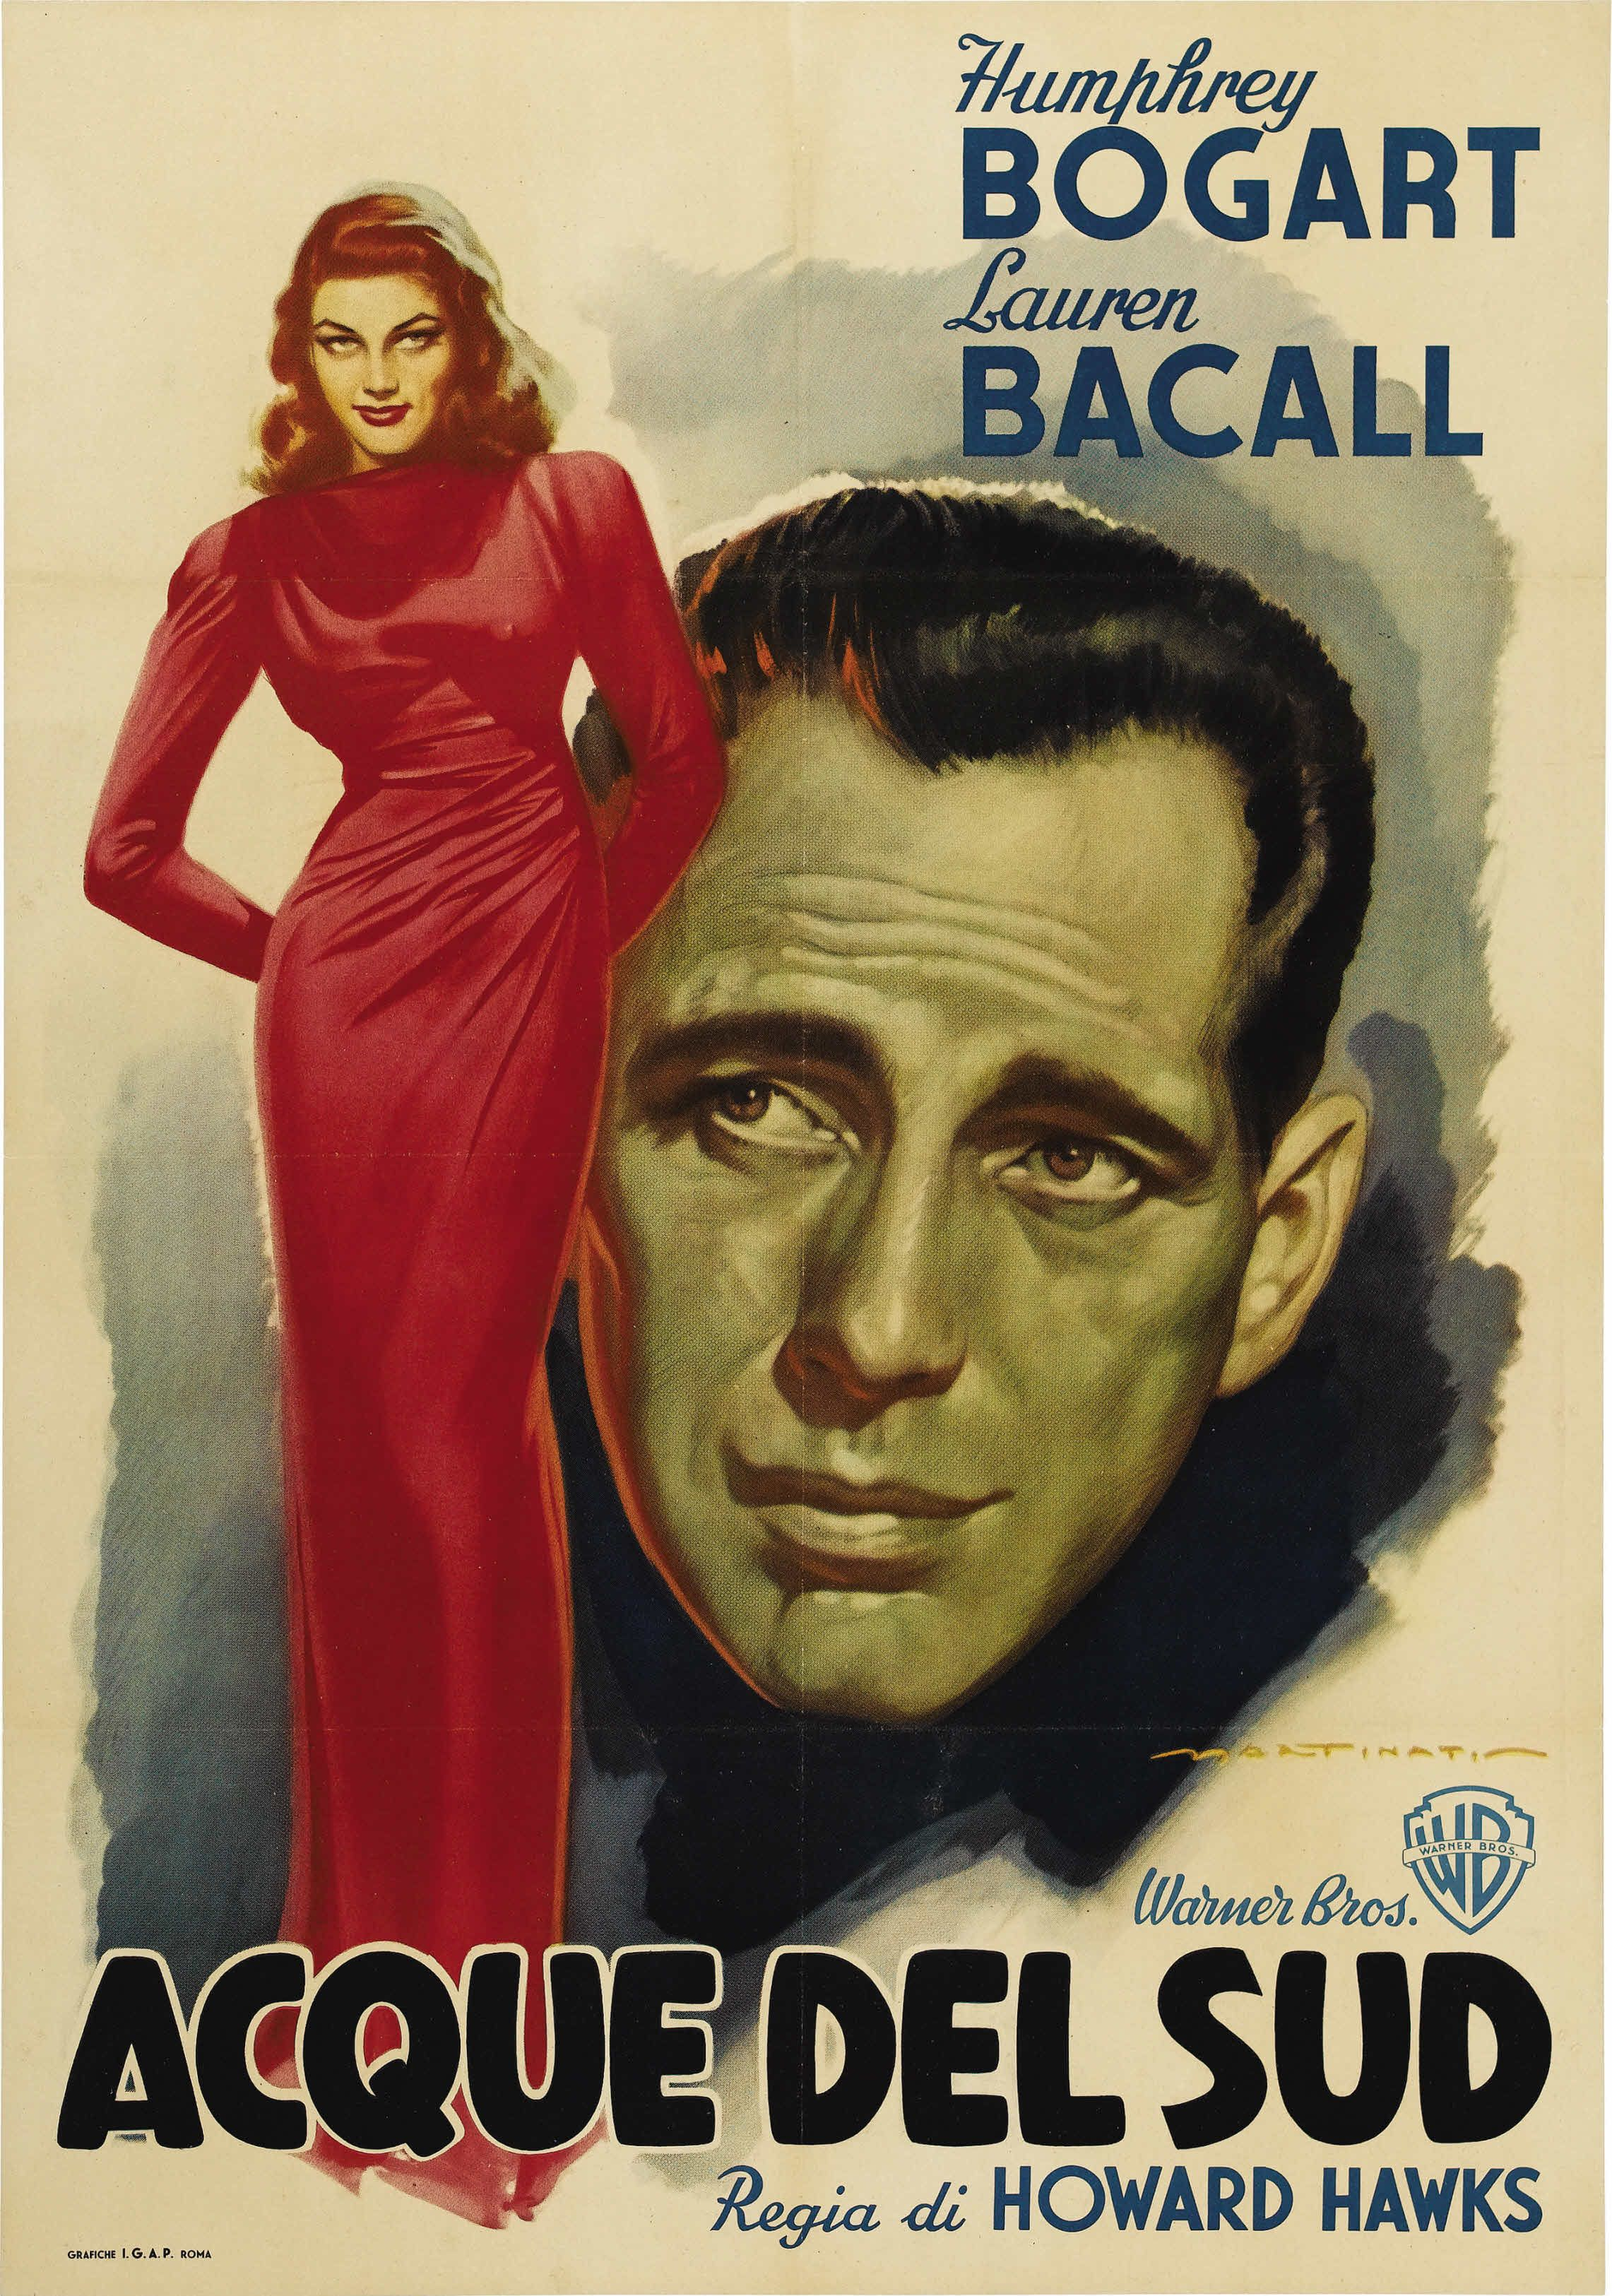 To Have and To Have Not (Howard Hawks, 1944) Italian foglio design by Luigi Martinati